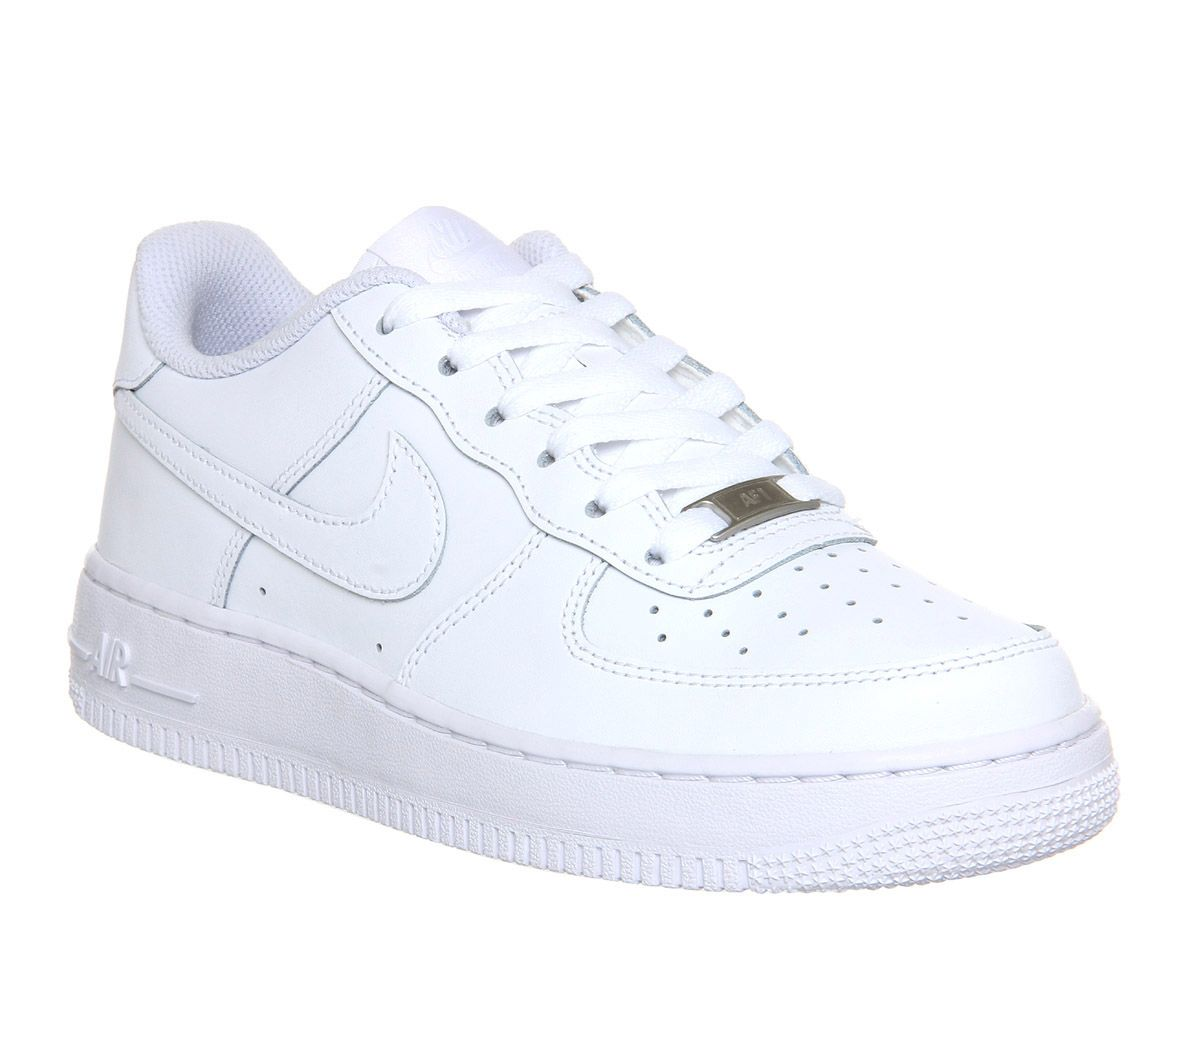 516d19acdf6 Nike Air Force 1 Trainers White - Kids Trainers